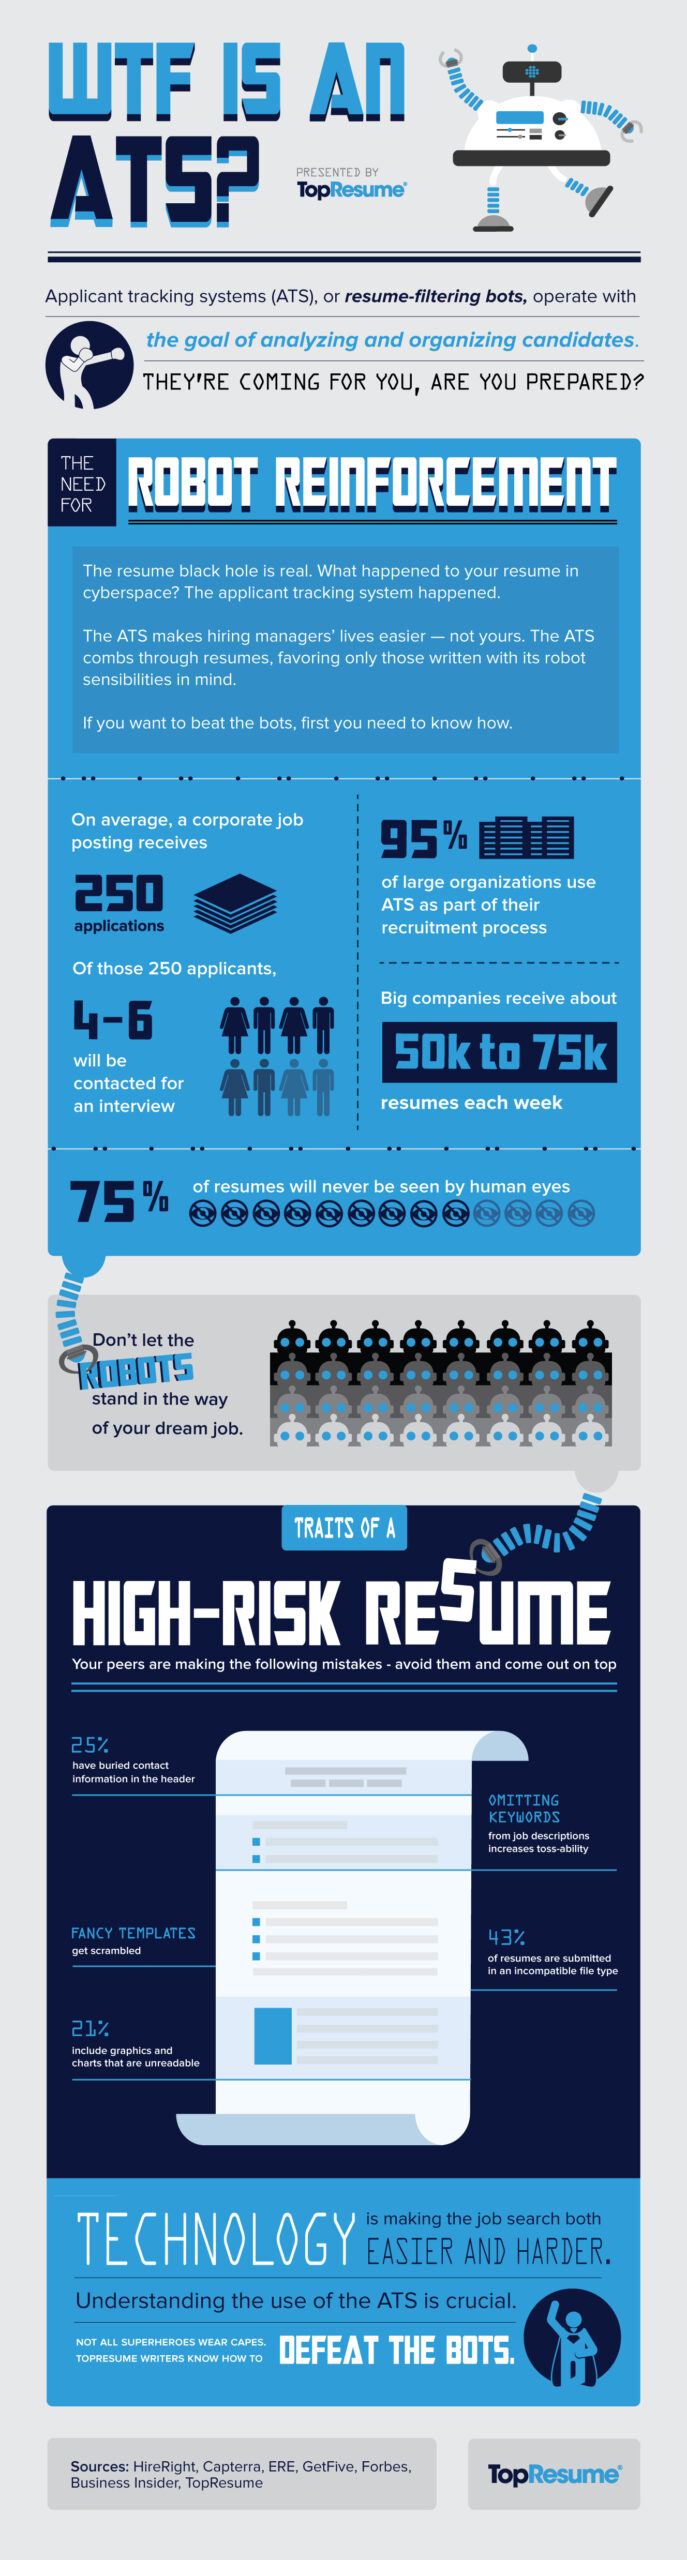 an ats to write resume beat the applicant tracking system topresume check infographic Resume Applicant Tracking System Resume Check